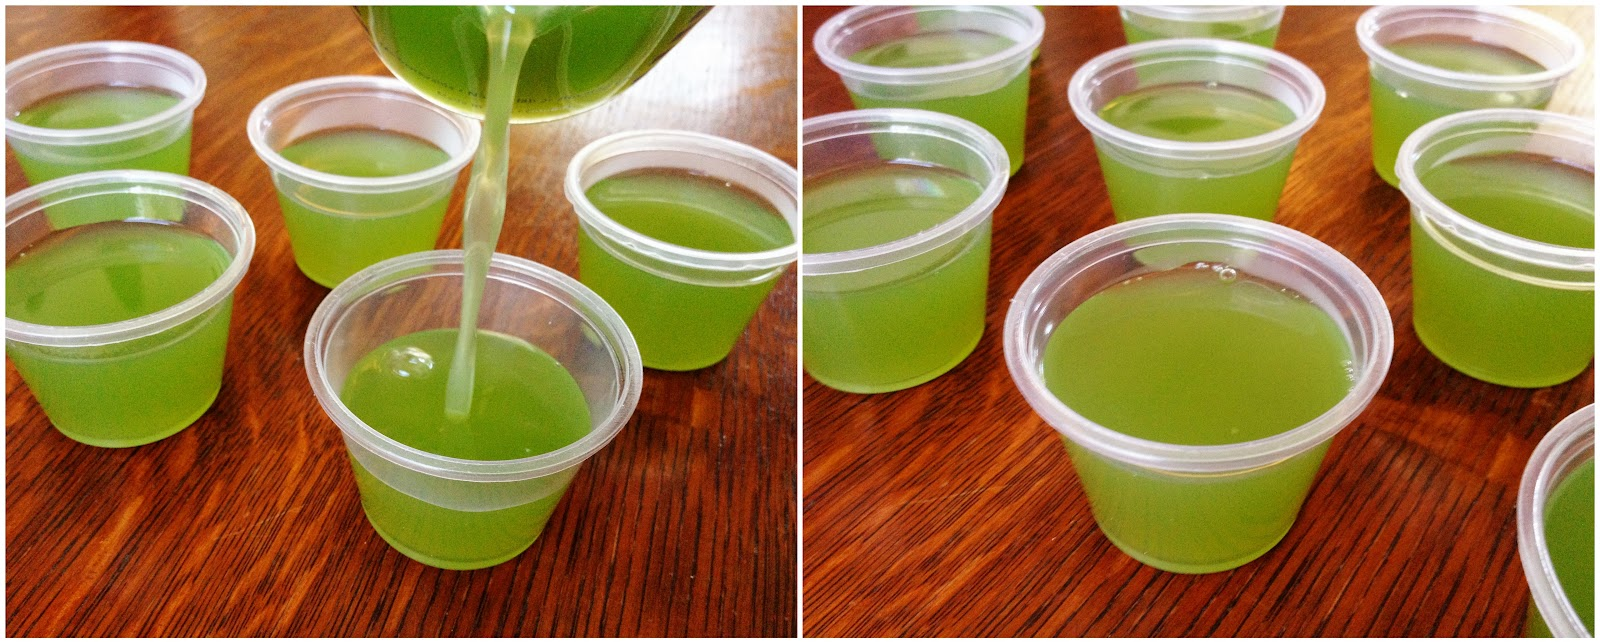 ... shot glasses or a silicone mold. This recipe will make enough jello to